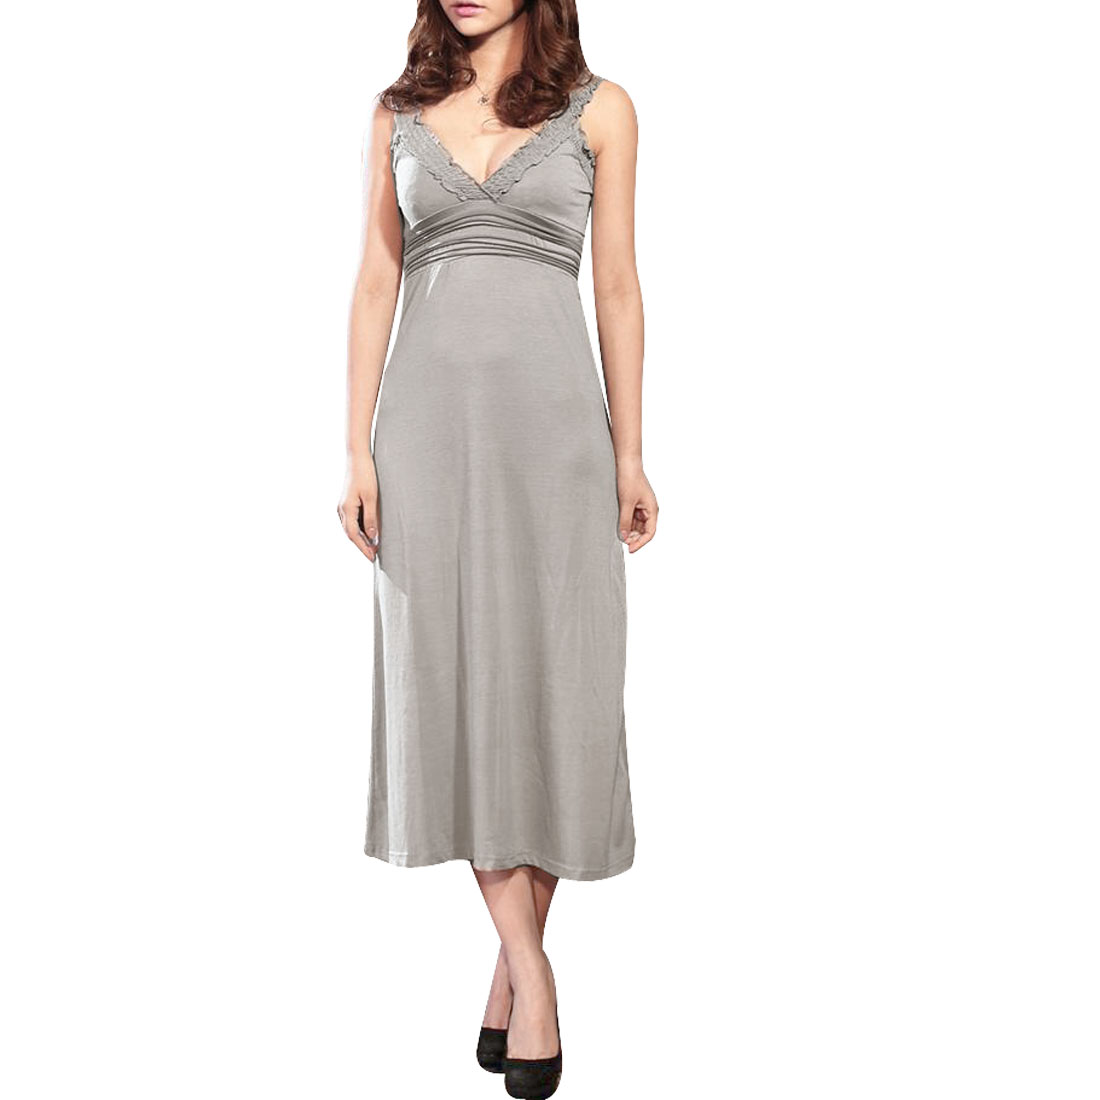 Ladies Charming Sexy Crossover V Neck Full Length Dress Gray XS